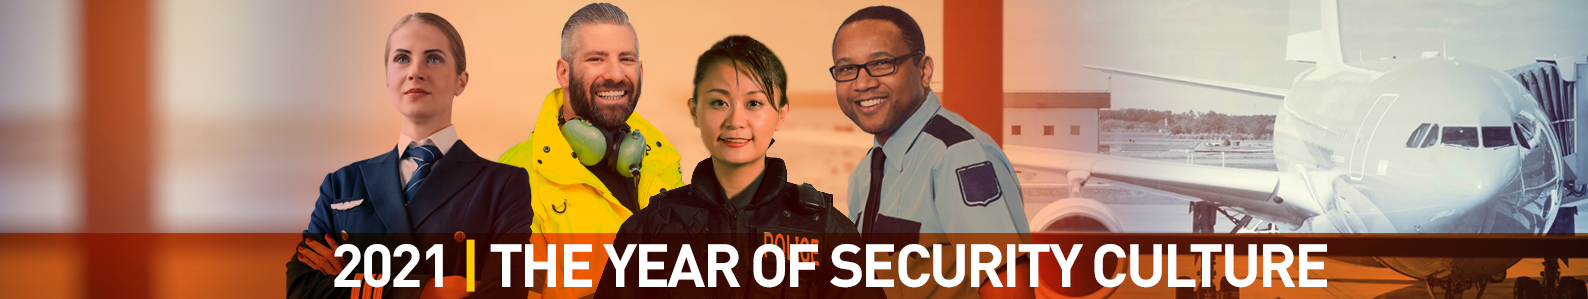 Year of Security Culture 2021